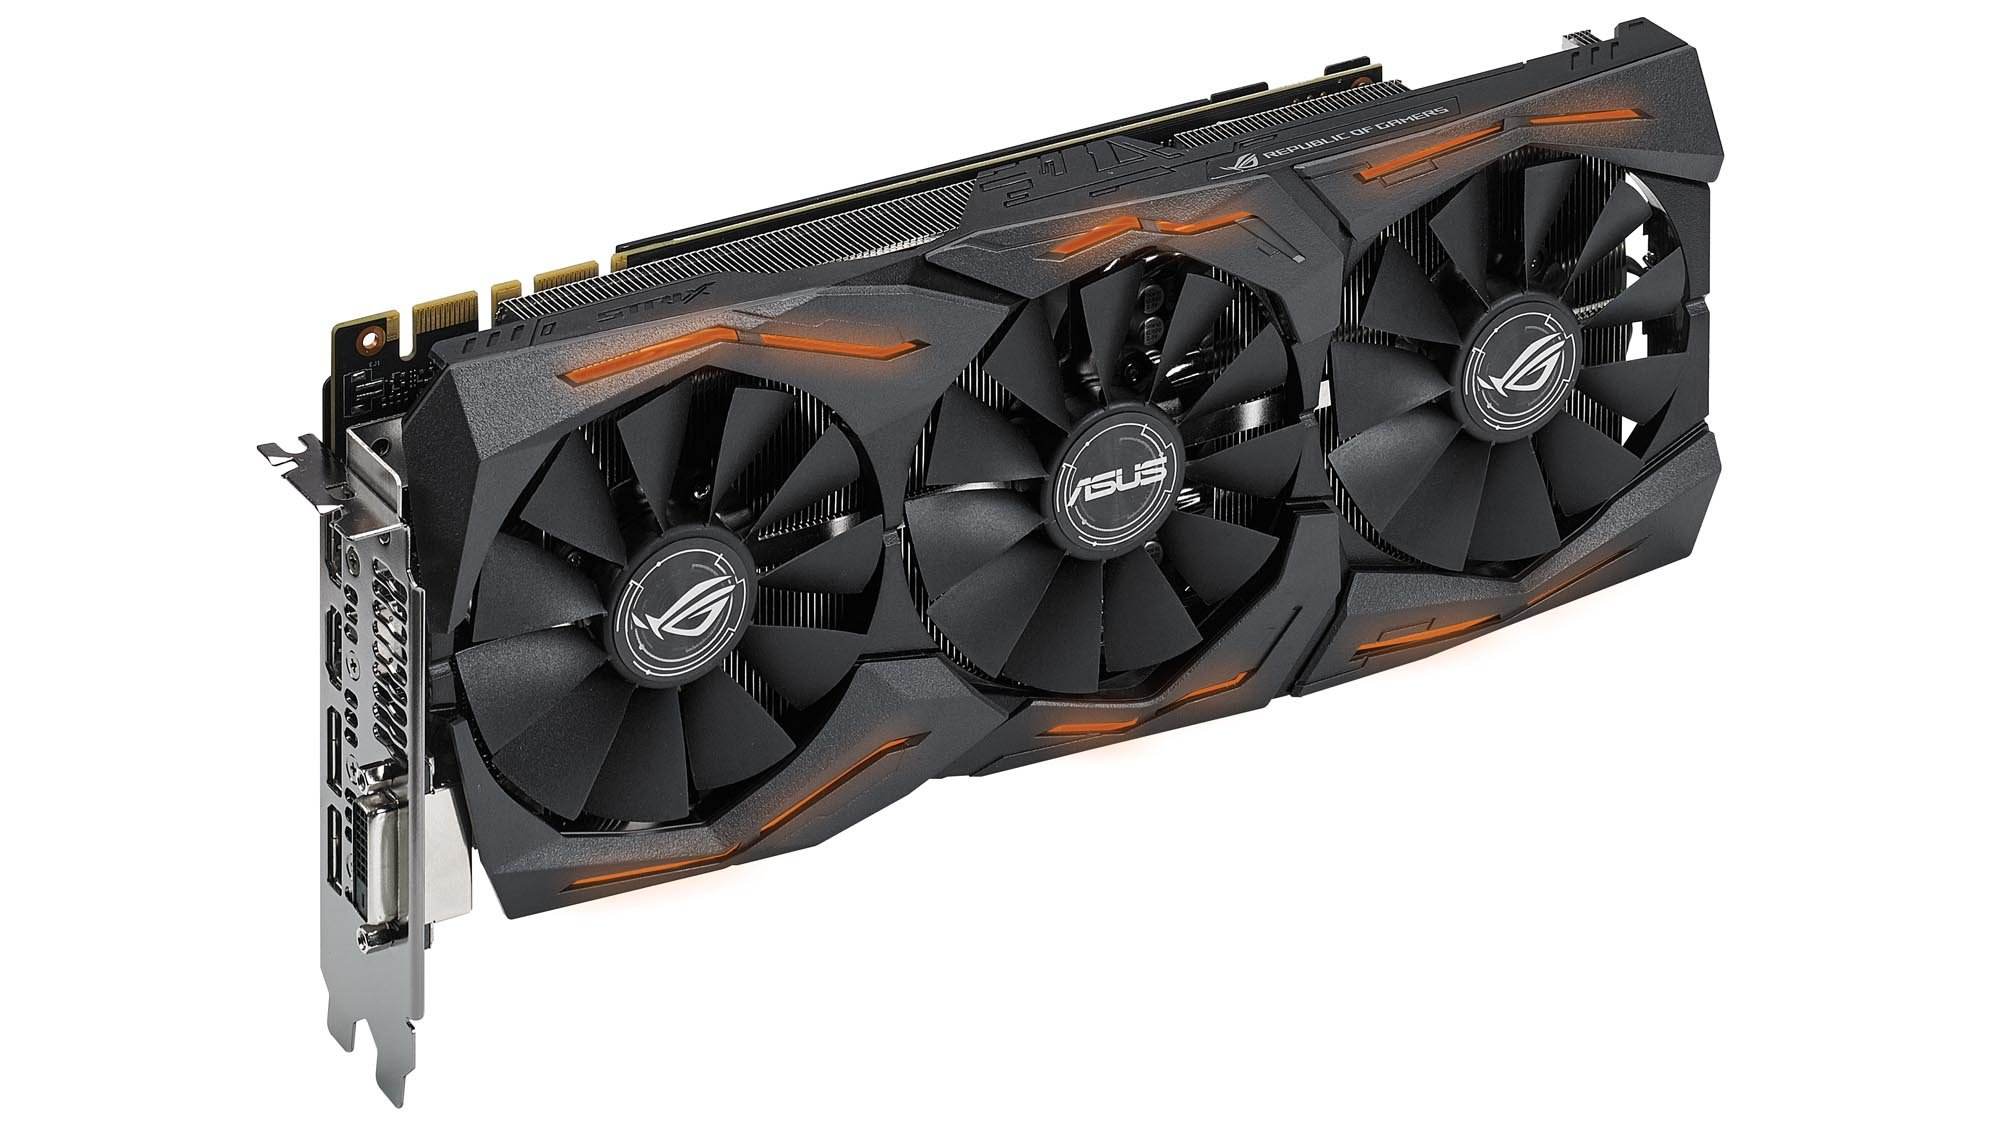 Nvidia GeForce GTX 1070 OC review: Almost-GTX 1080 power for less